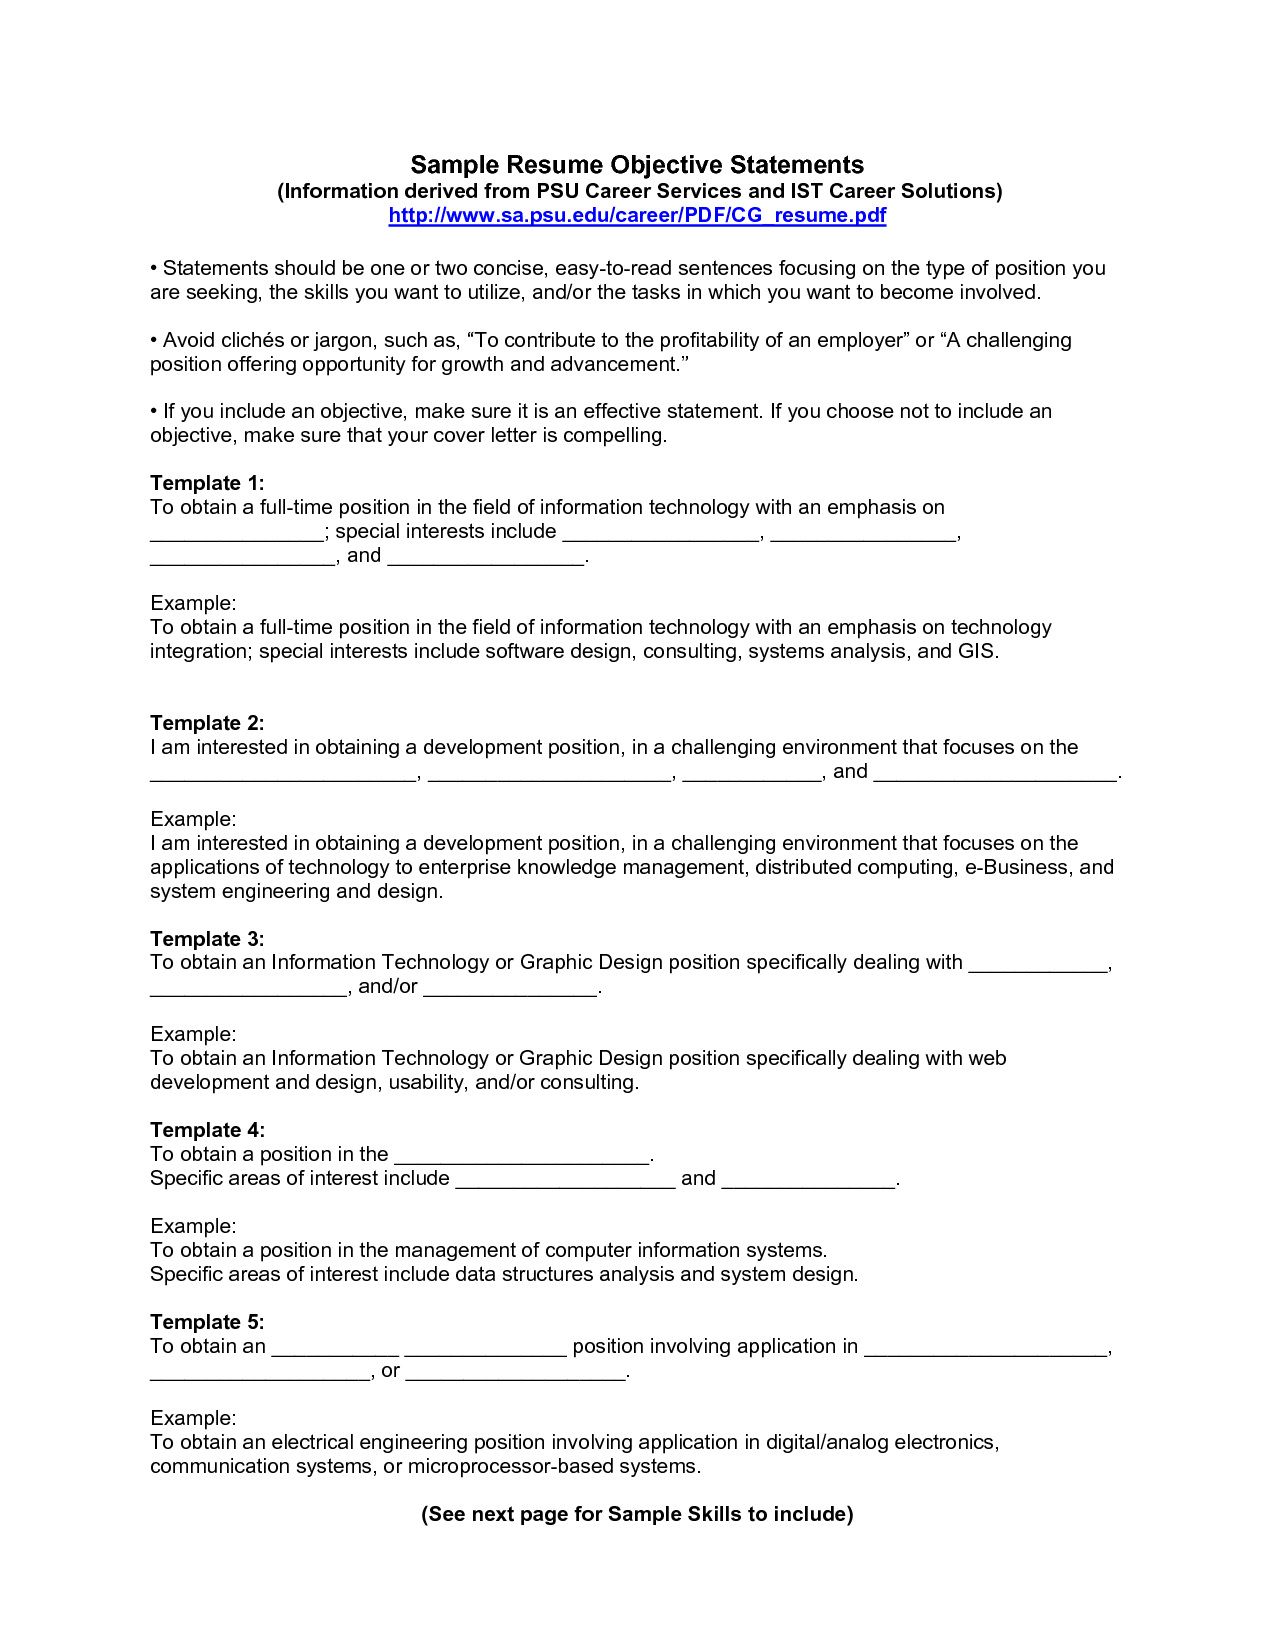 Career Fair Resume Objective Resume For Job Fair Careers